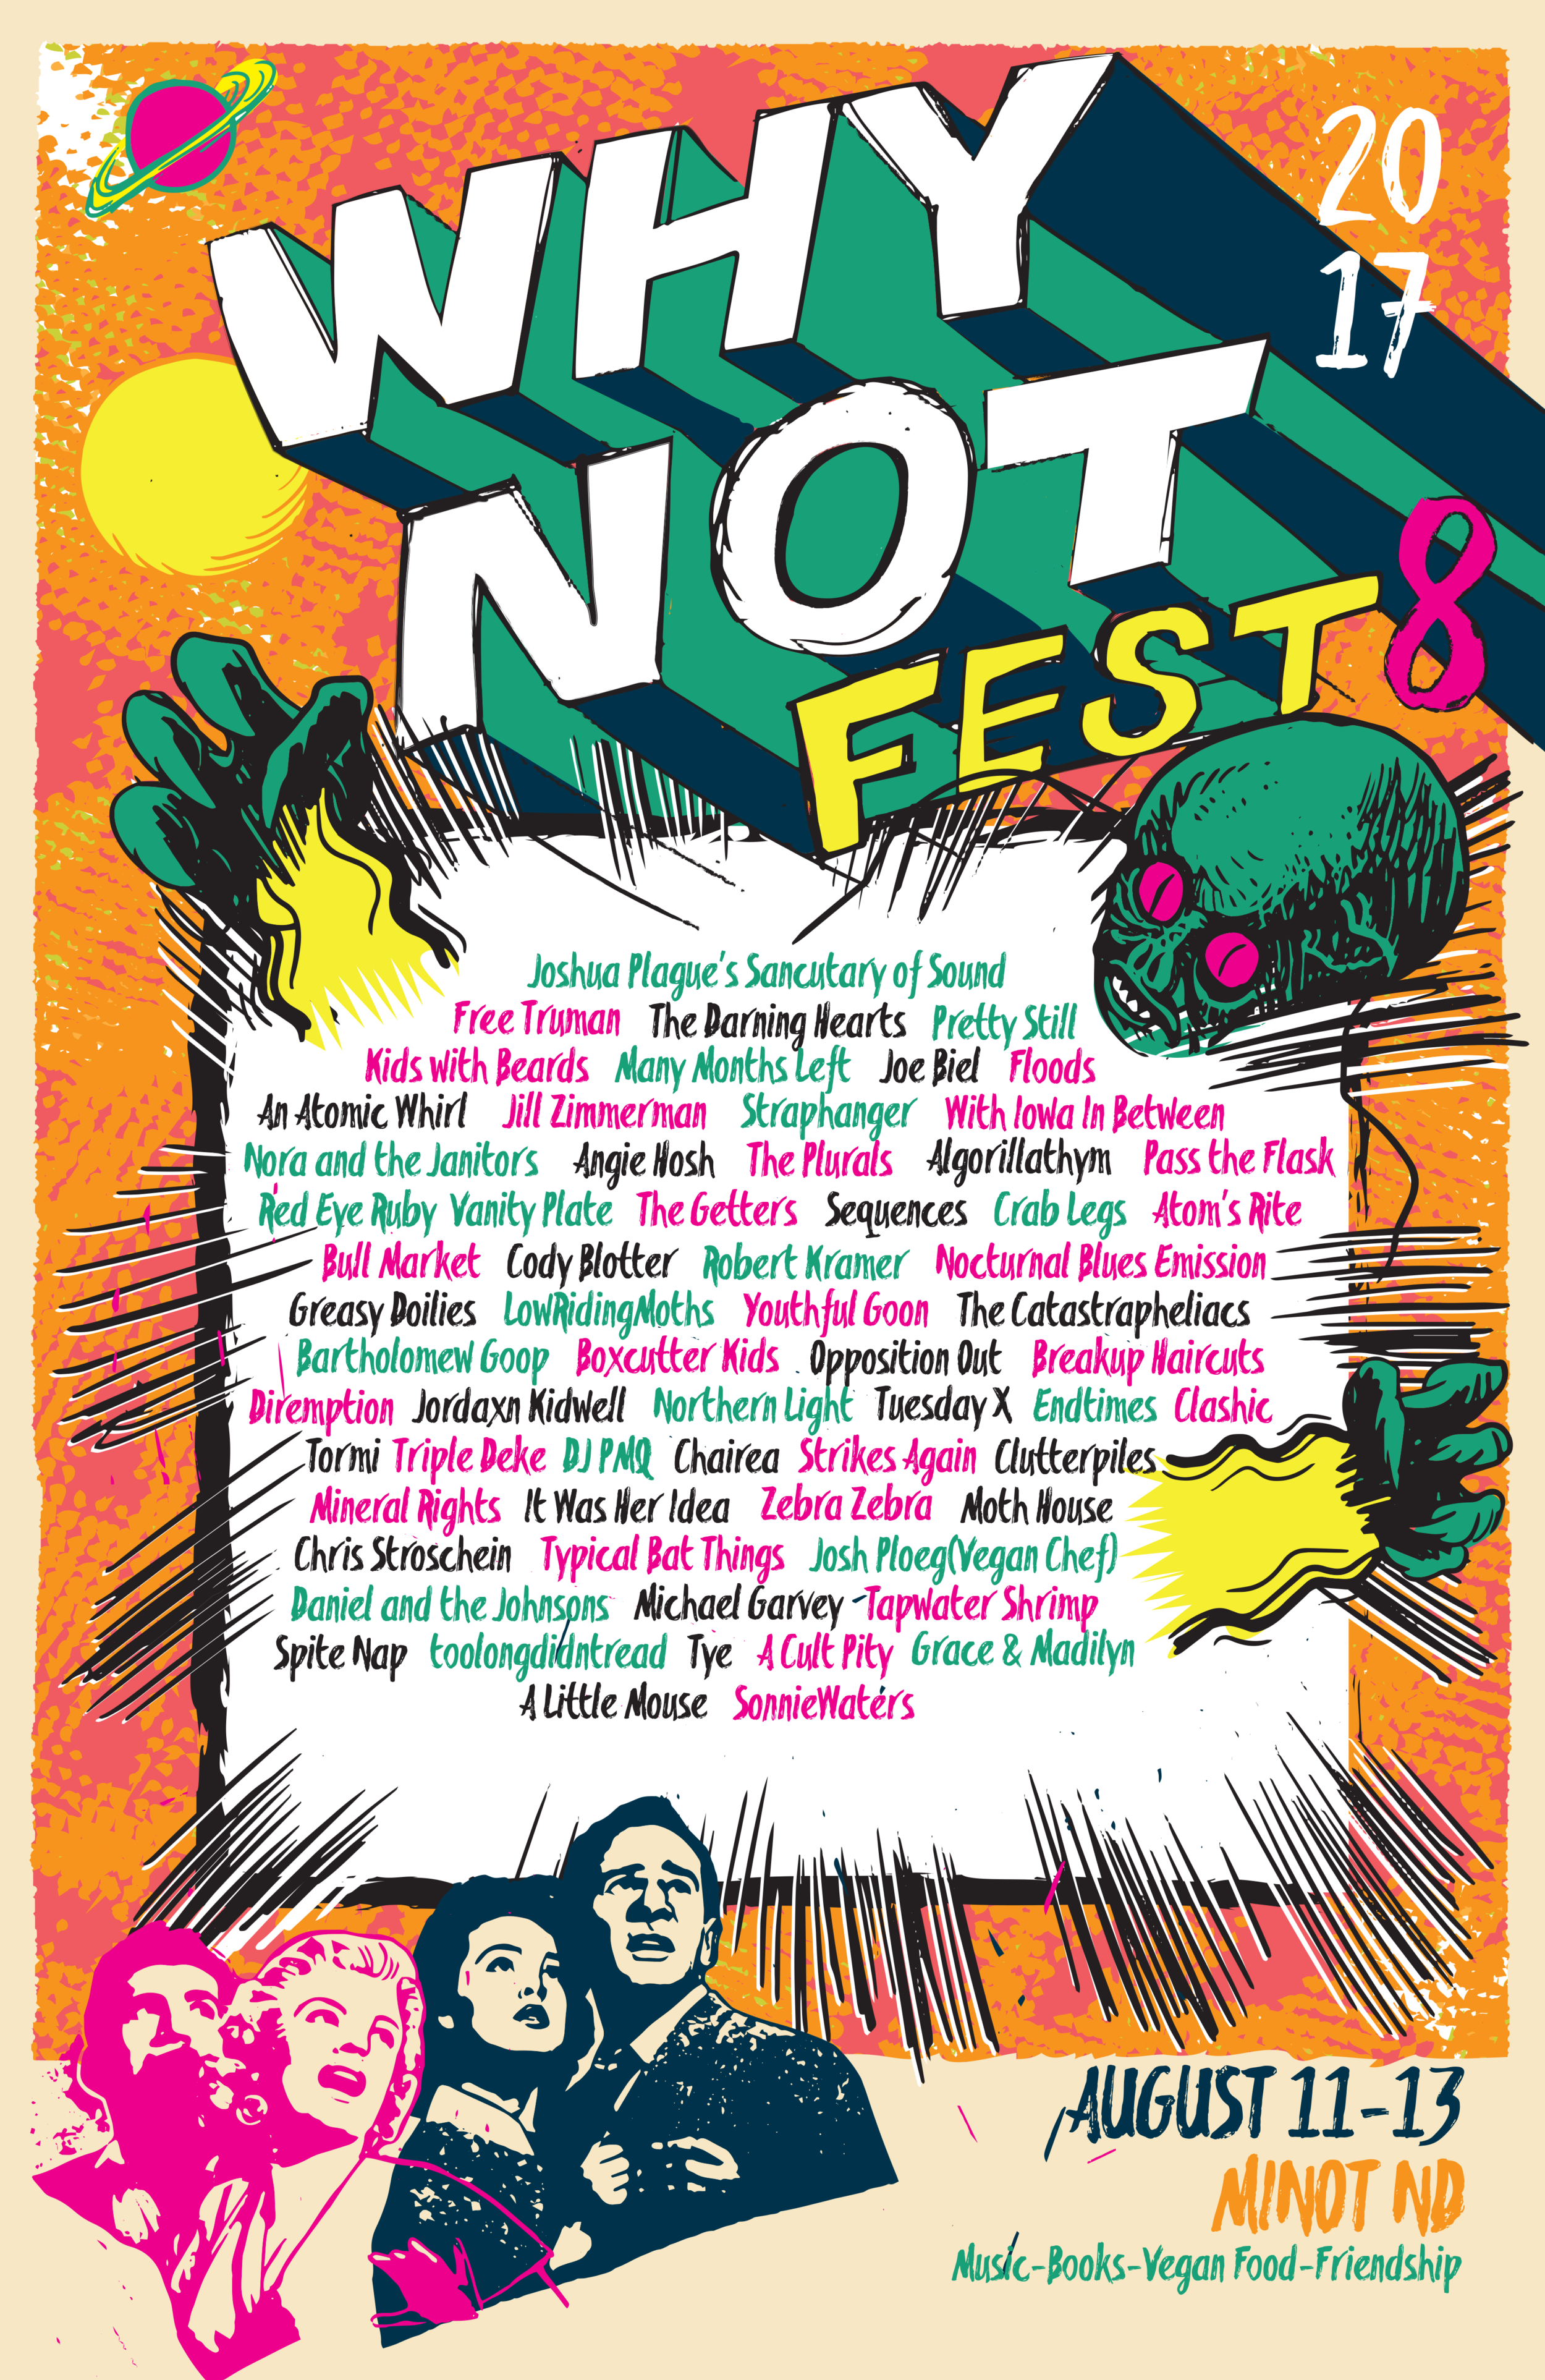 Why Not?!? Fest 8  flier designed by  Justin Morales .